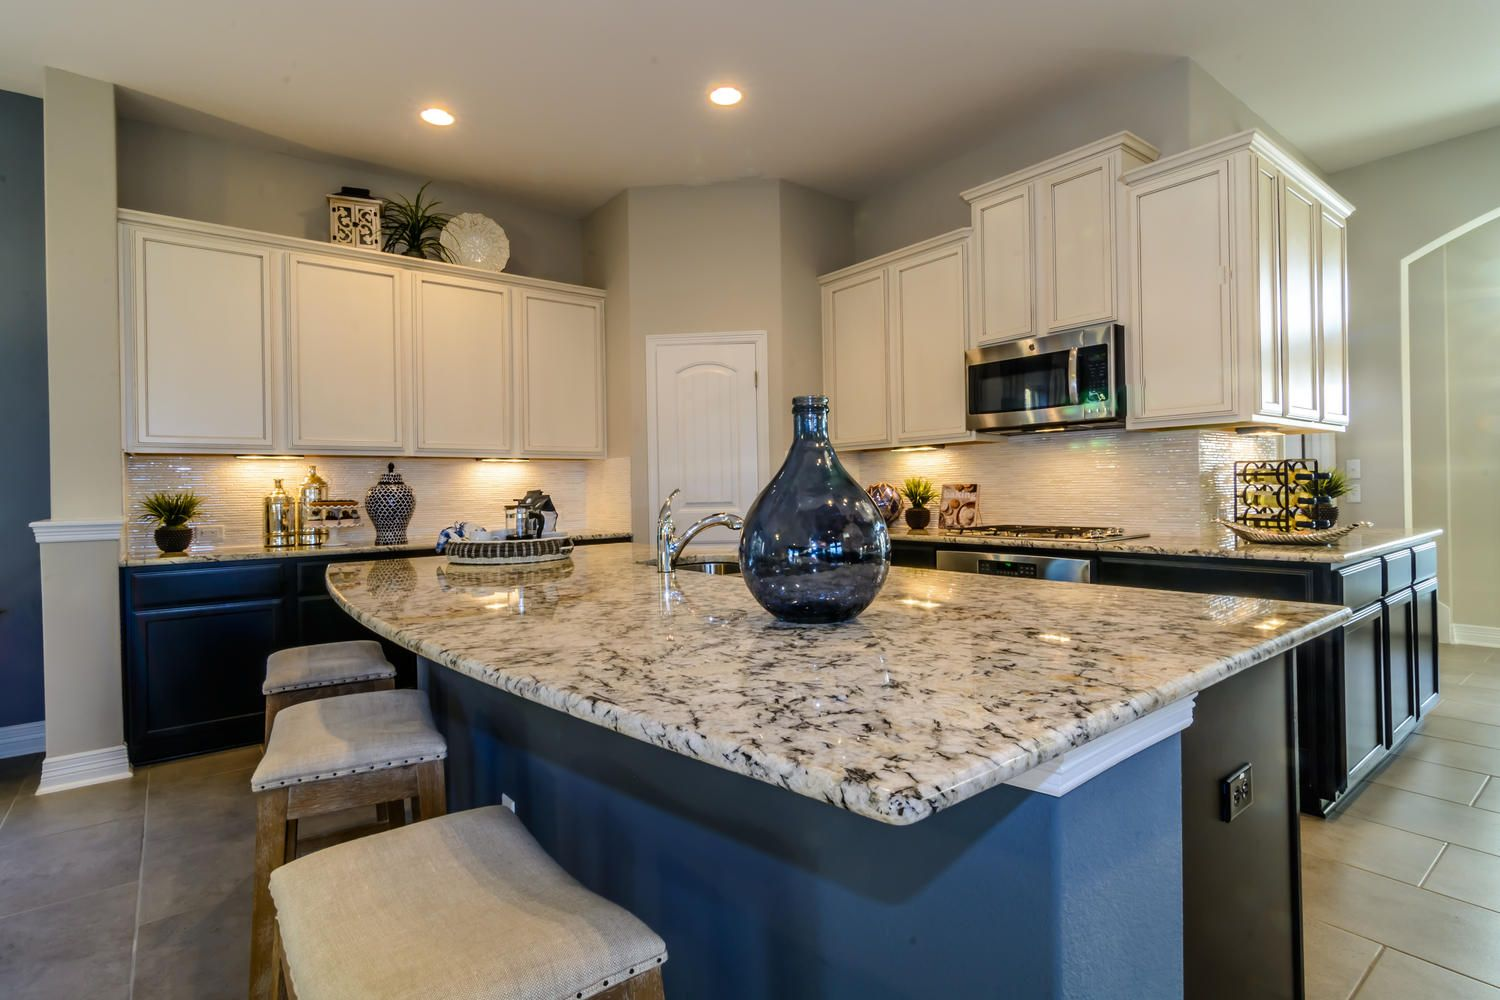 Sweetwater jacquelyn chesmar homes this is the house i want granite looks nice with the white cabinets and dark floors dailygadgetfo Image collections